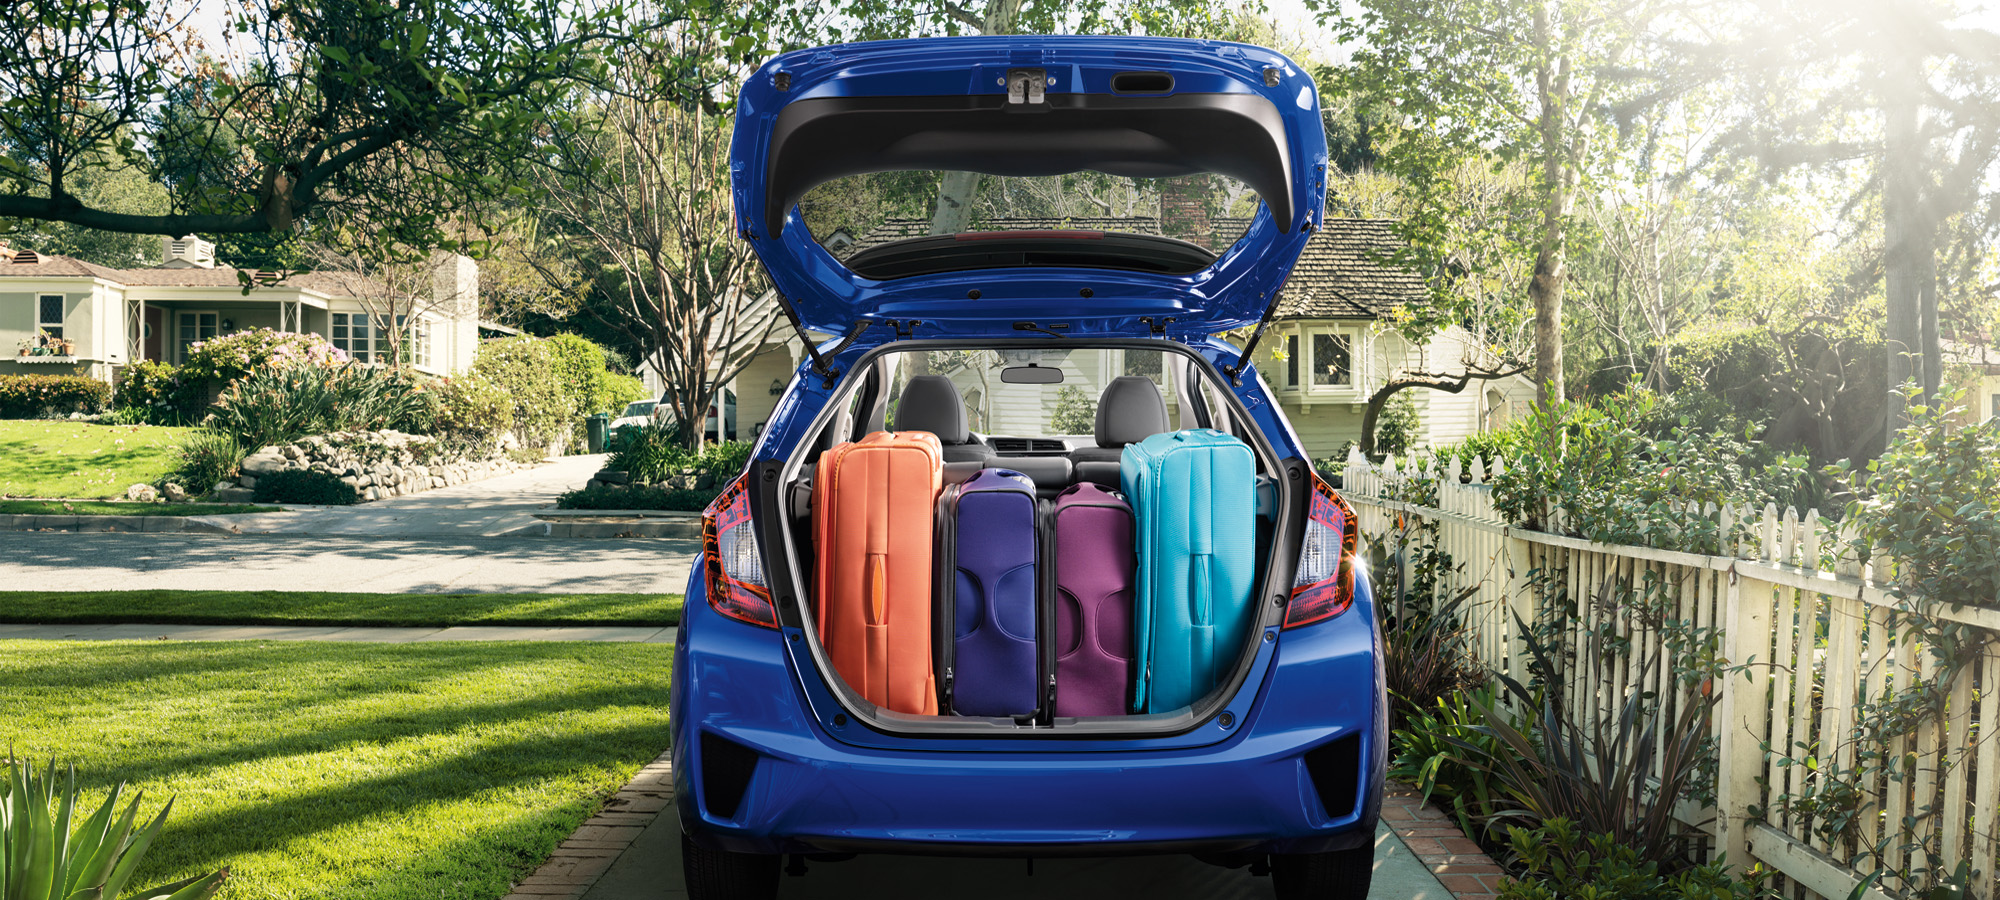 honda fit in milwaukee wi schlossmann 39 s honda city. Black Bedroom Furniture Sets. Home Design Ideas